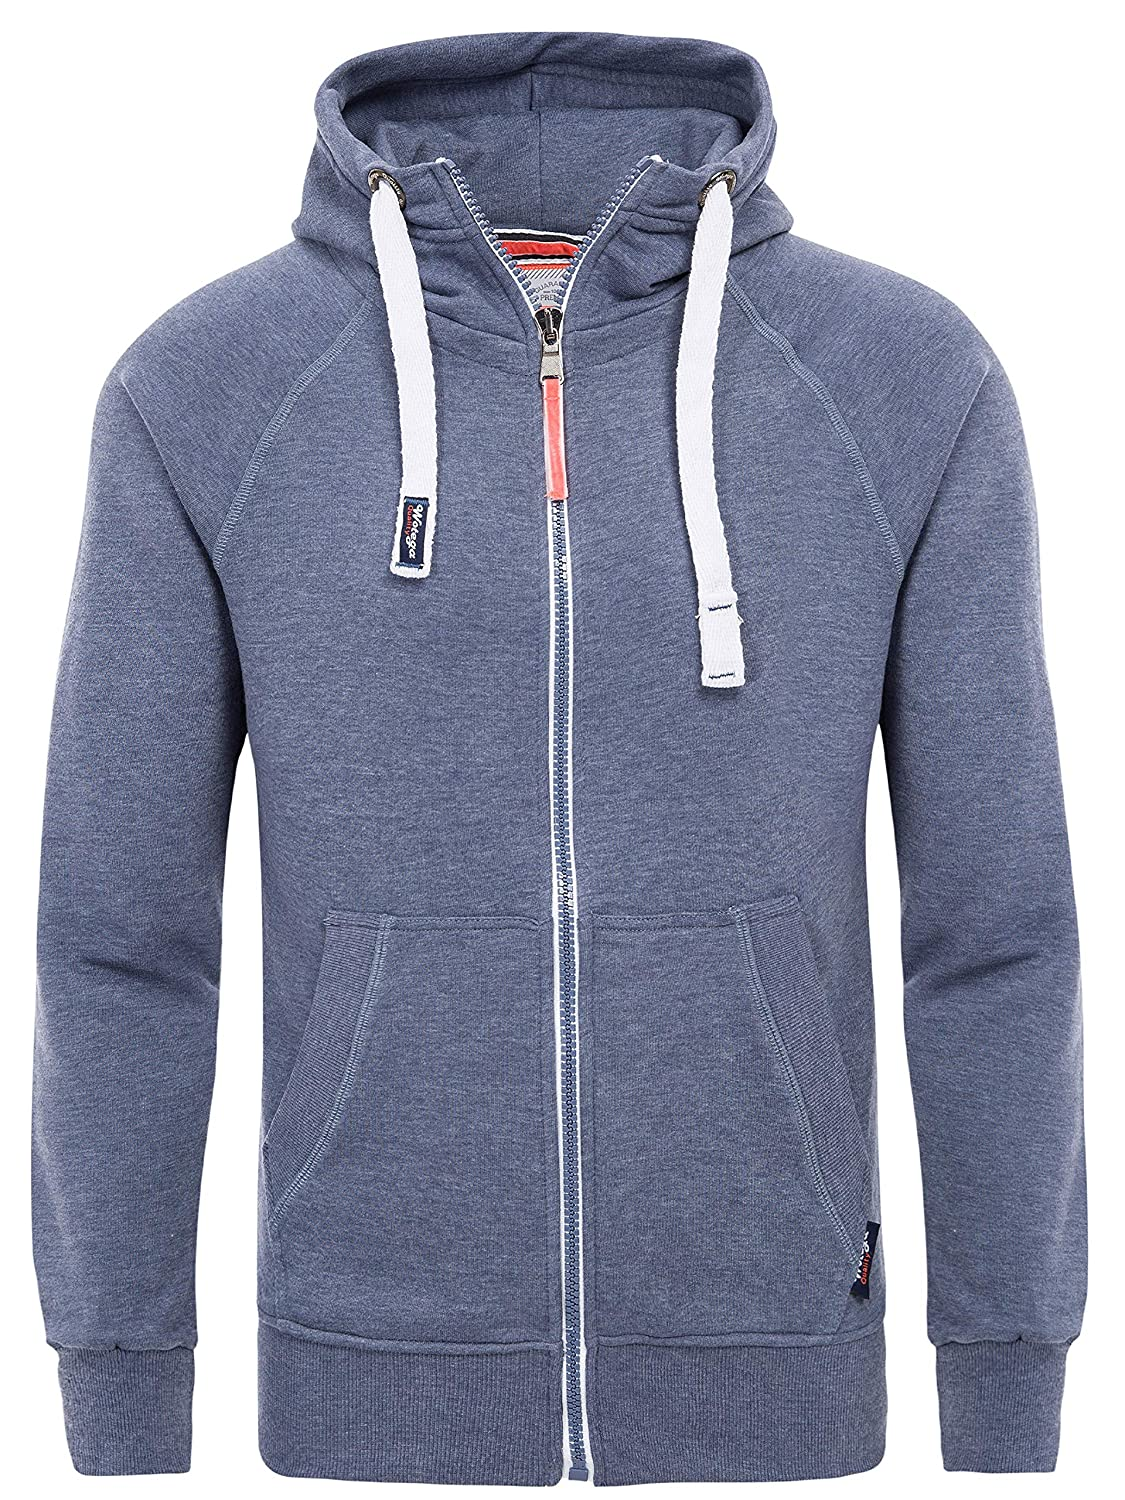 WOTEGA Sweat-Shirt /à Capuche Homme Zipp/é Slim Cordon Alex